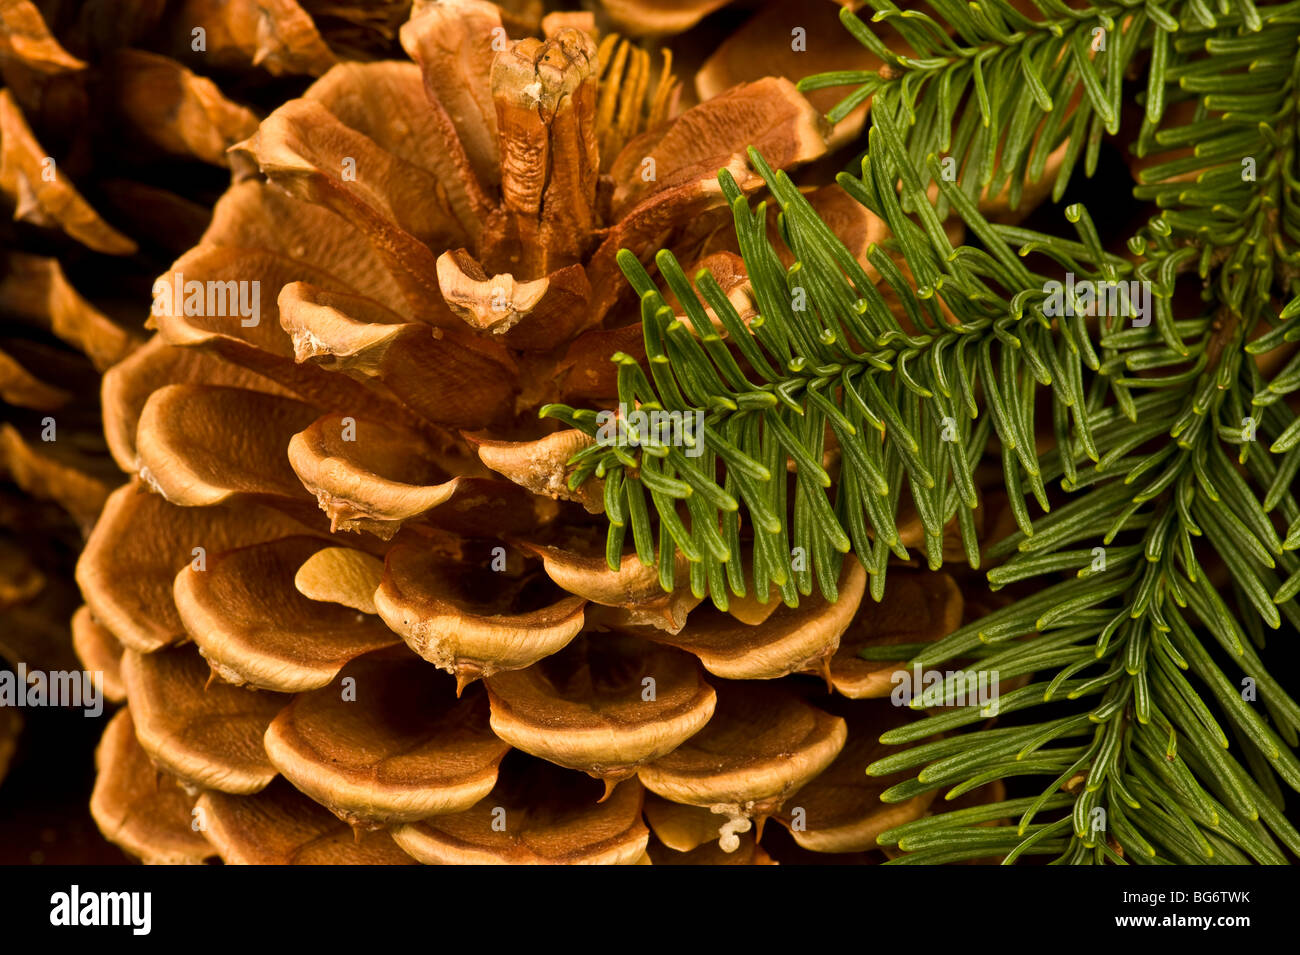 Christmas Pine cones and pine branches - Stock Image